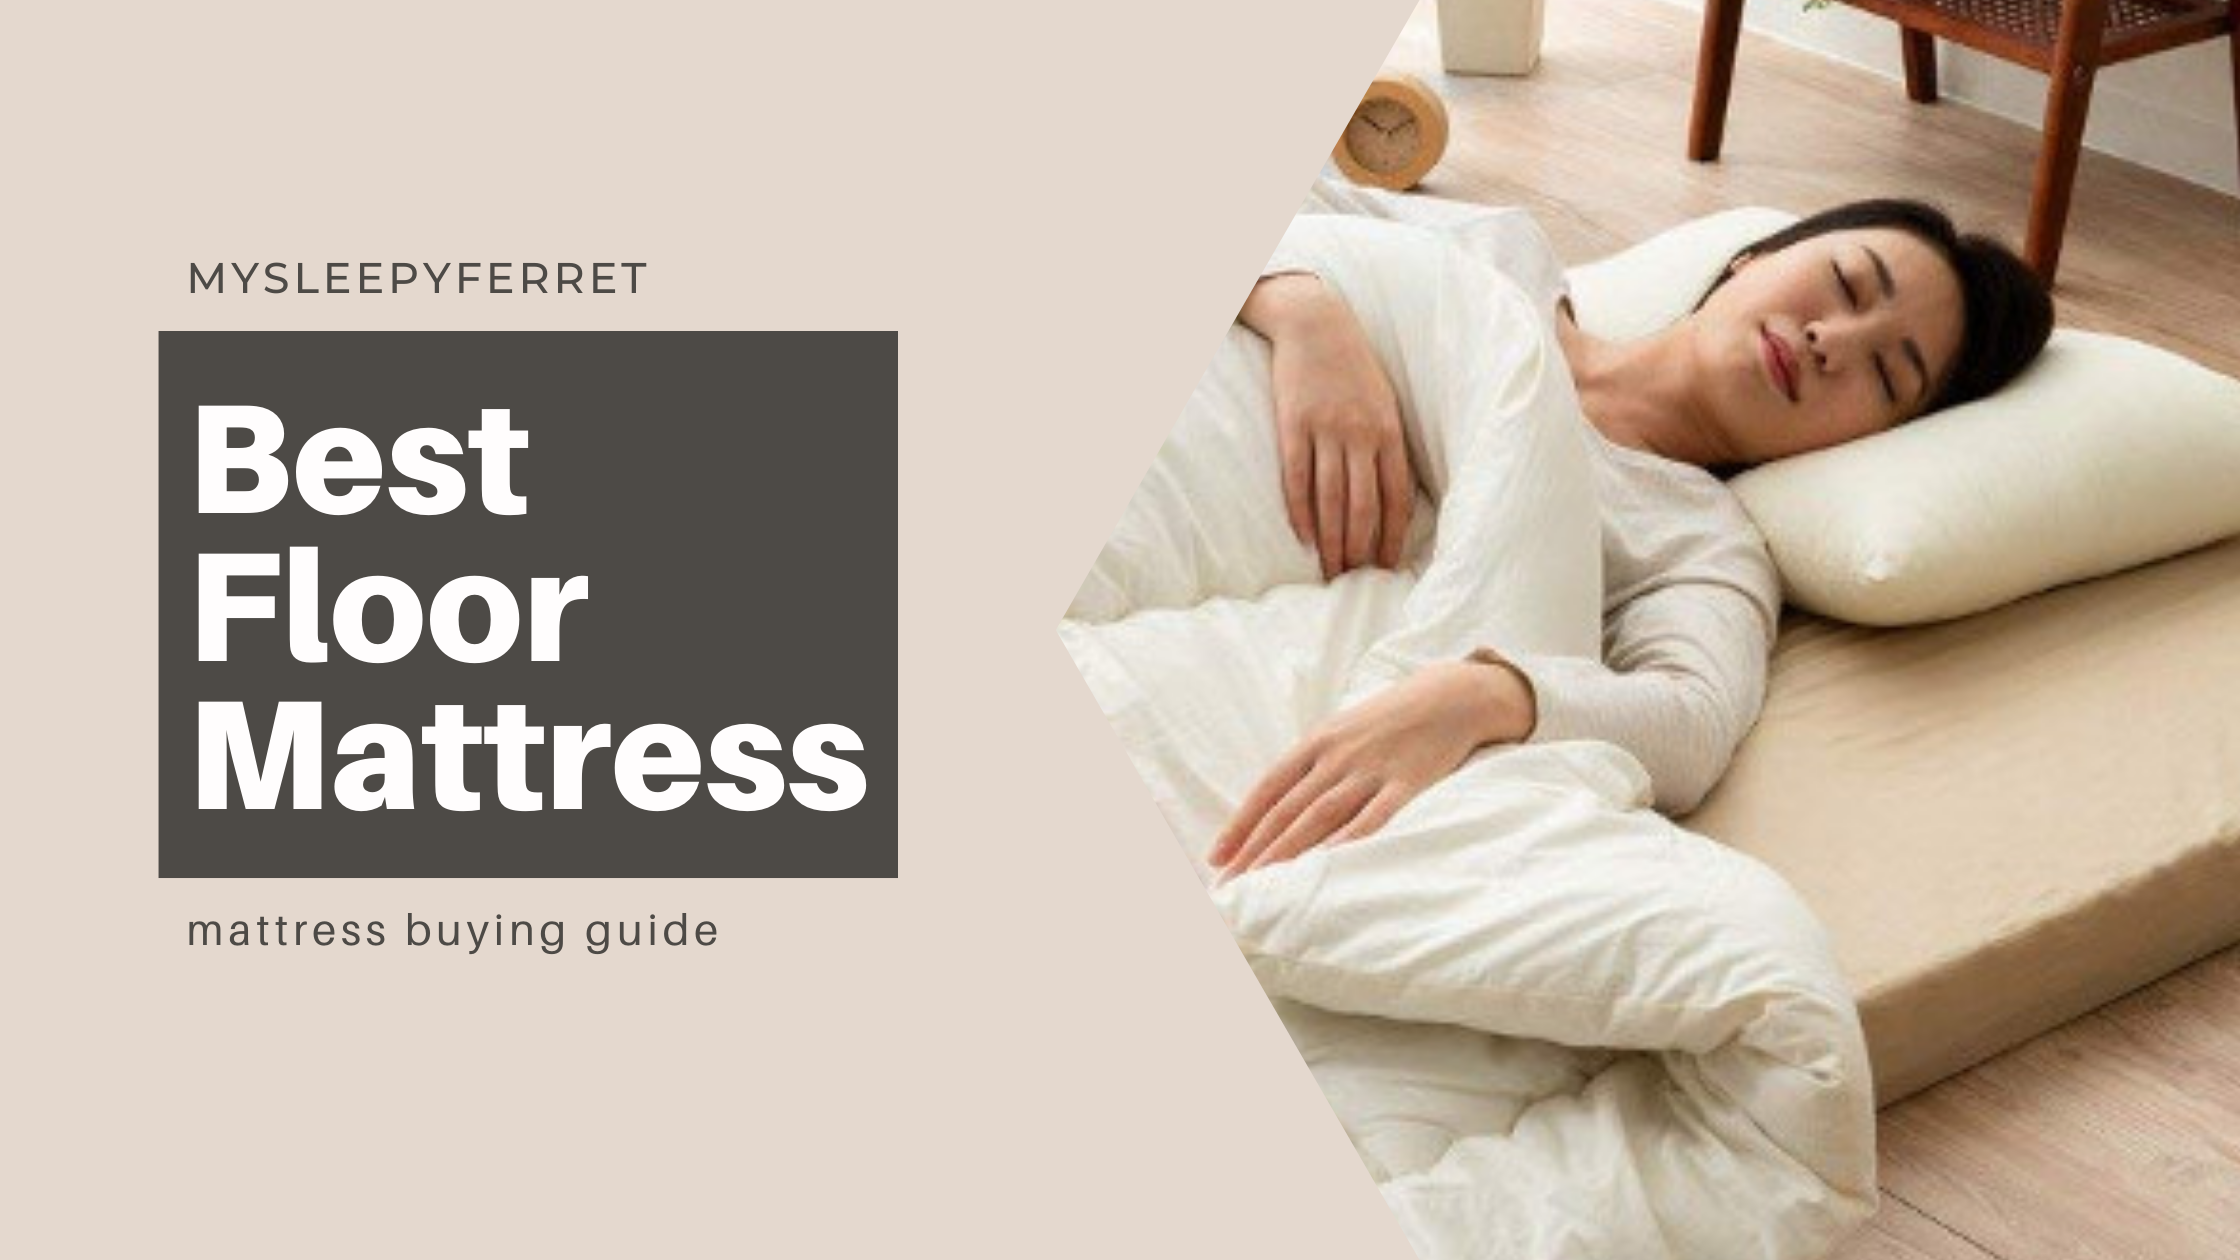 5 Best Floor Mattresses for for Back and Posture Sleep Relief